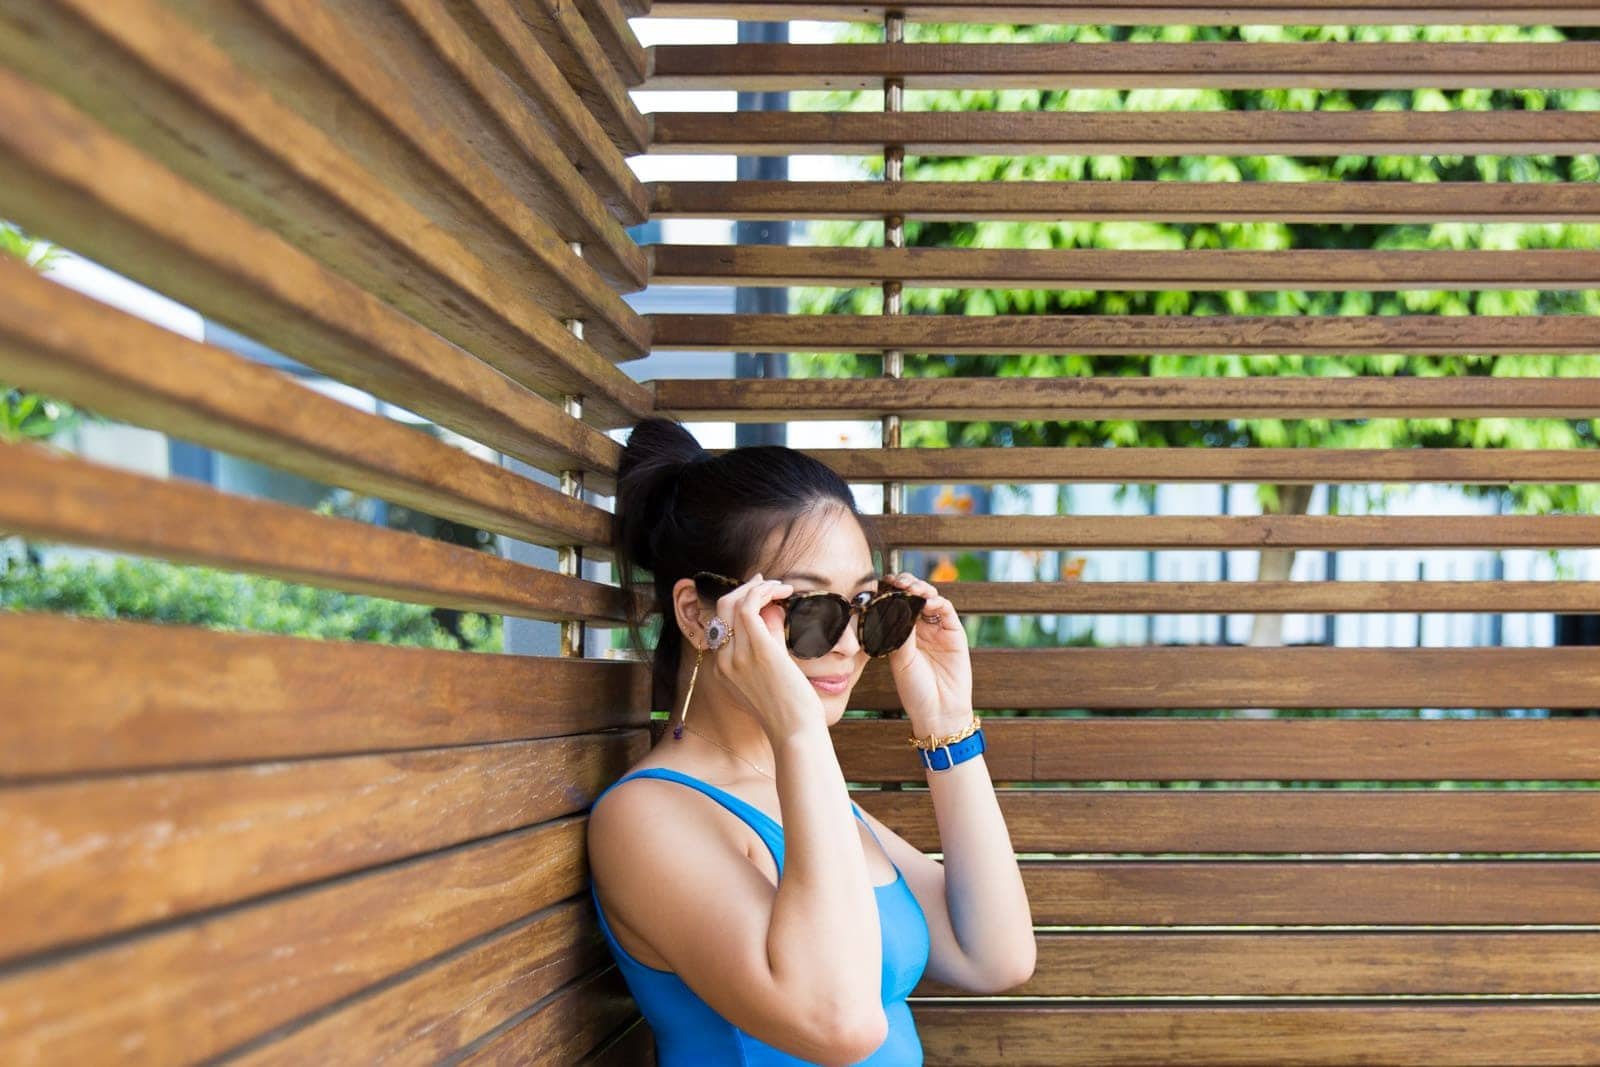 A woman with dark hair in a bun, wearing a blue top. She is holding her round sunglasses to her face, almost covering her eyes. Her eyes are wide open